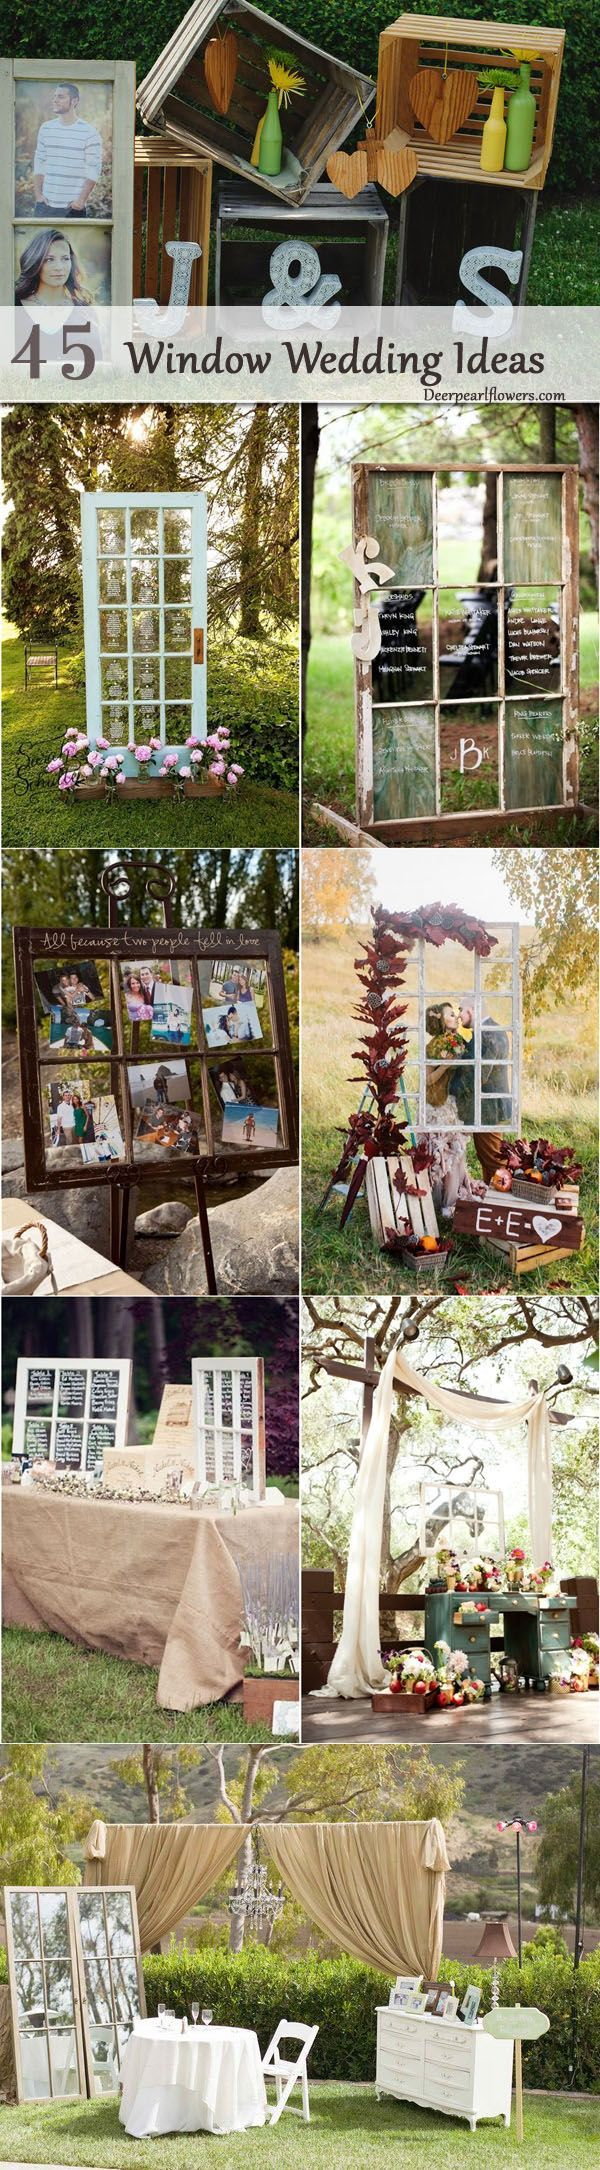 Window decor for wedding   best wedding ideas images on pinterest  wedding ideas rustic